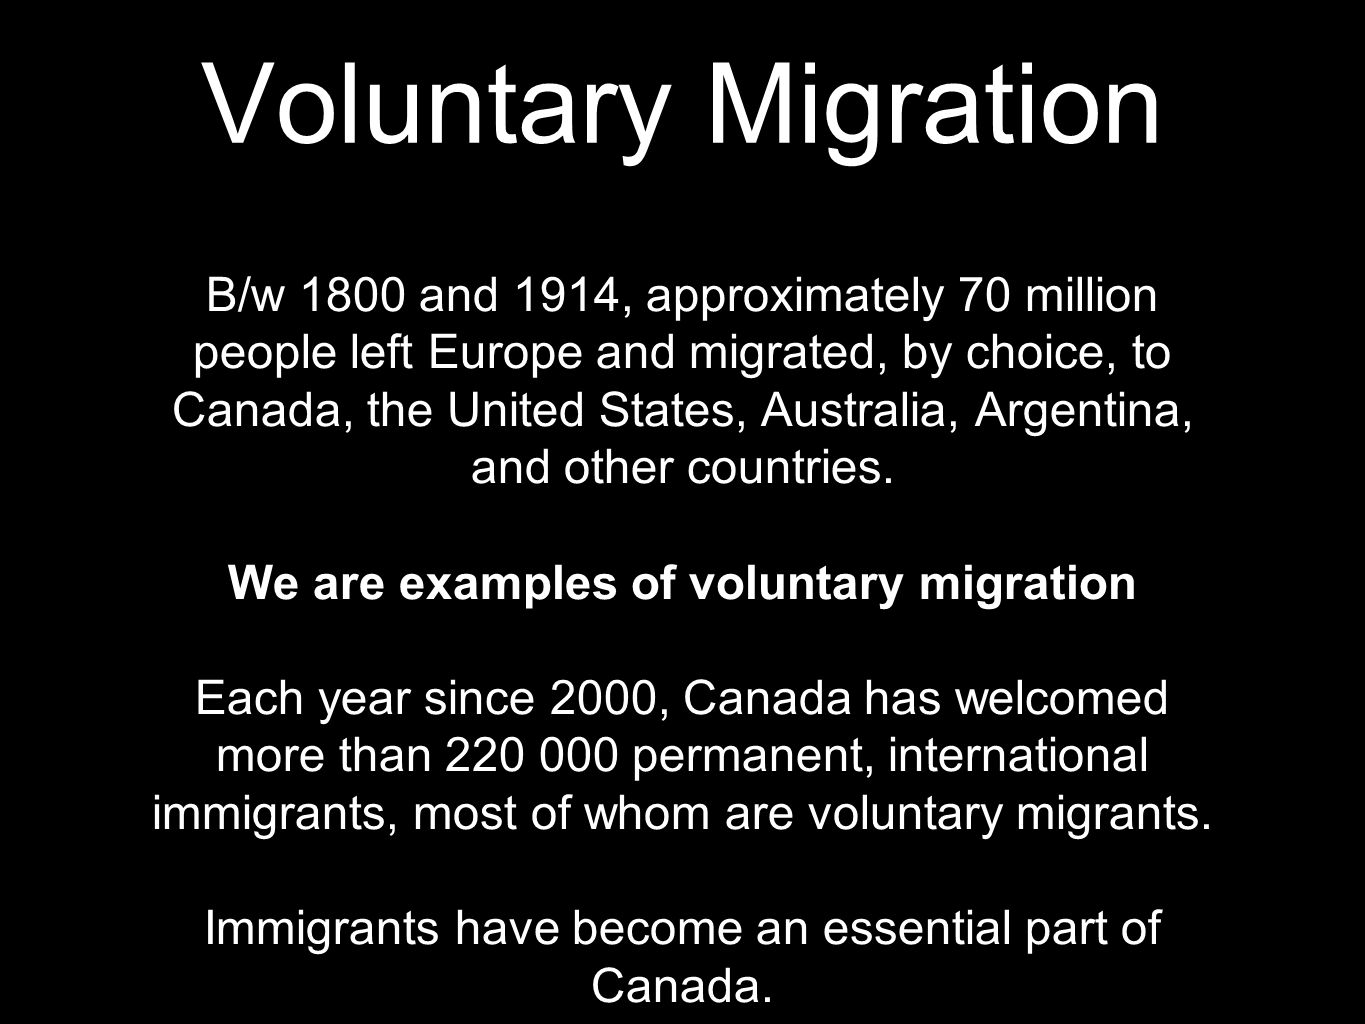 Voluntary Migration B/w 1800 and 1914, approximately 70 million people left Europe and migrated, by choice, to Canada, the United States, Australia, Argentina, and other countries.